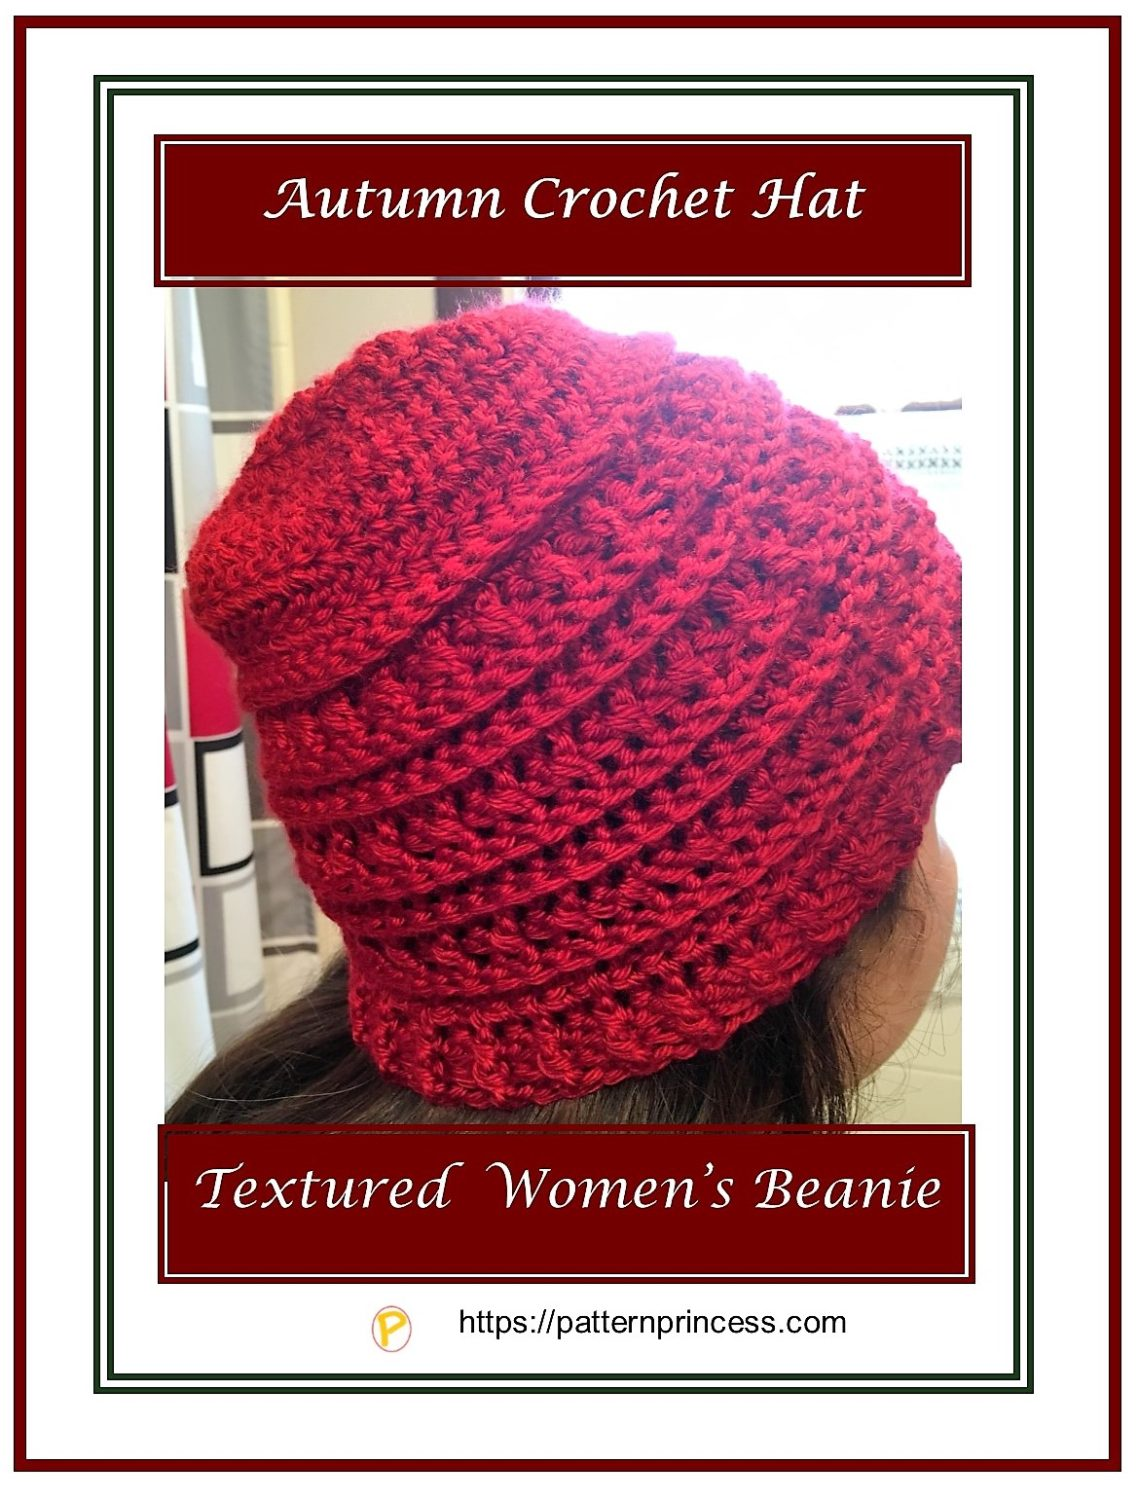 Autumn Crochet Hat 1